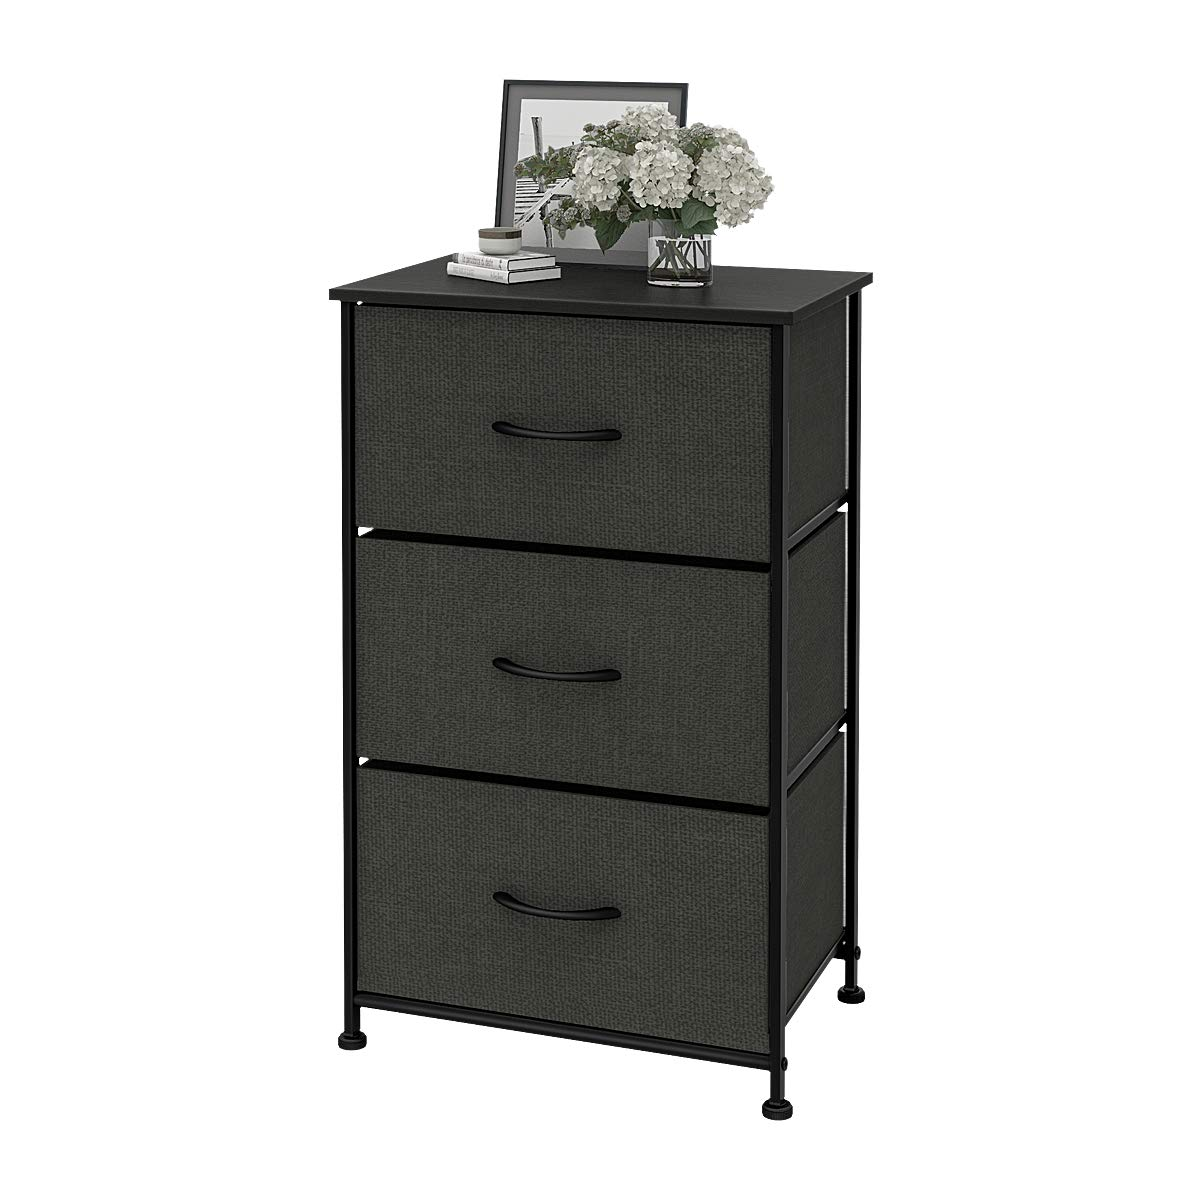 WLIVE Dresser with 3 Drawers, Fabric Storage Tower, Organizer Unit for Bedroom, Hallway, Entryway, Closets, Sturdy Steel Frame, Wood Top, Easy Pull Handle by WLIVE